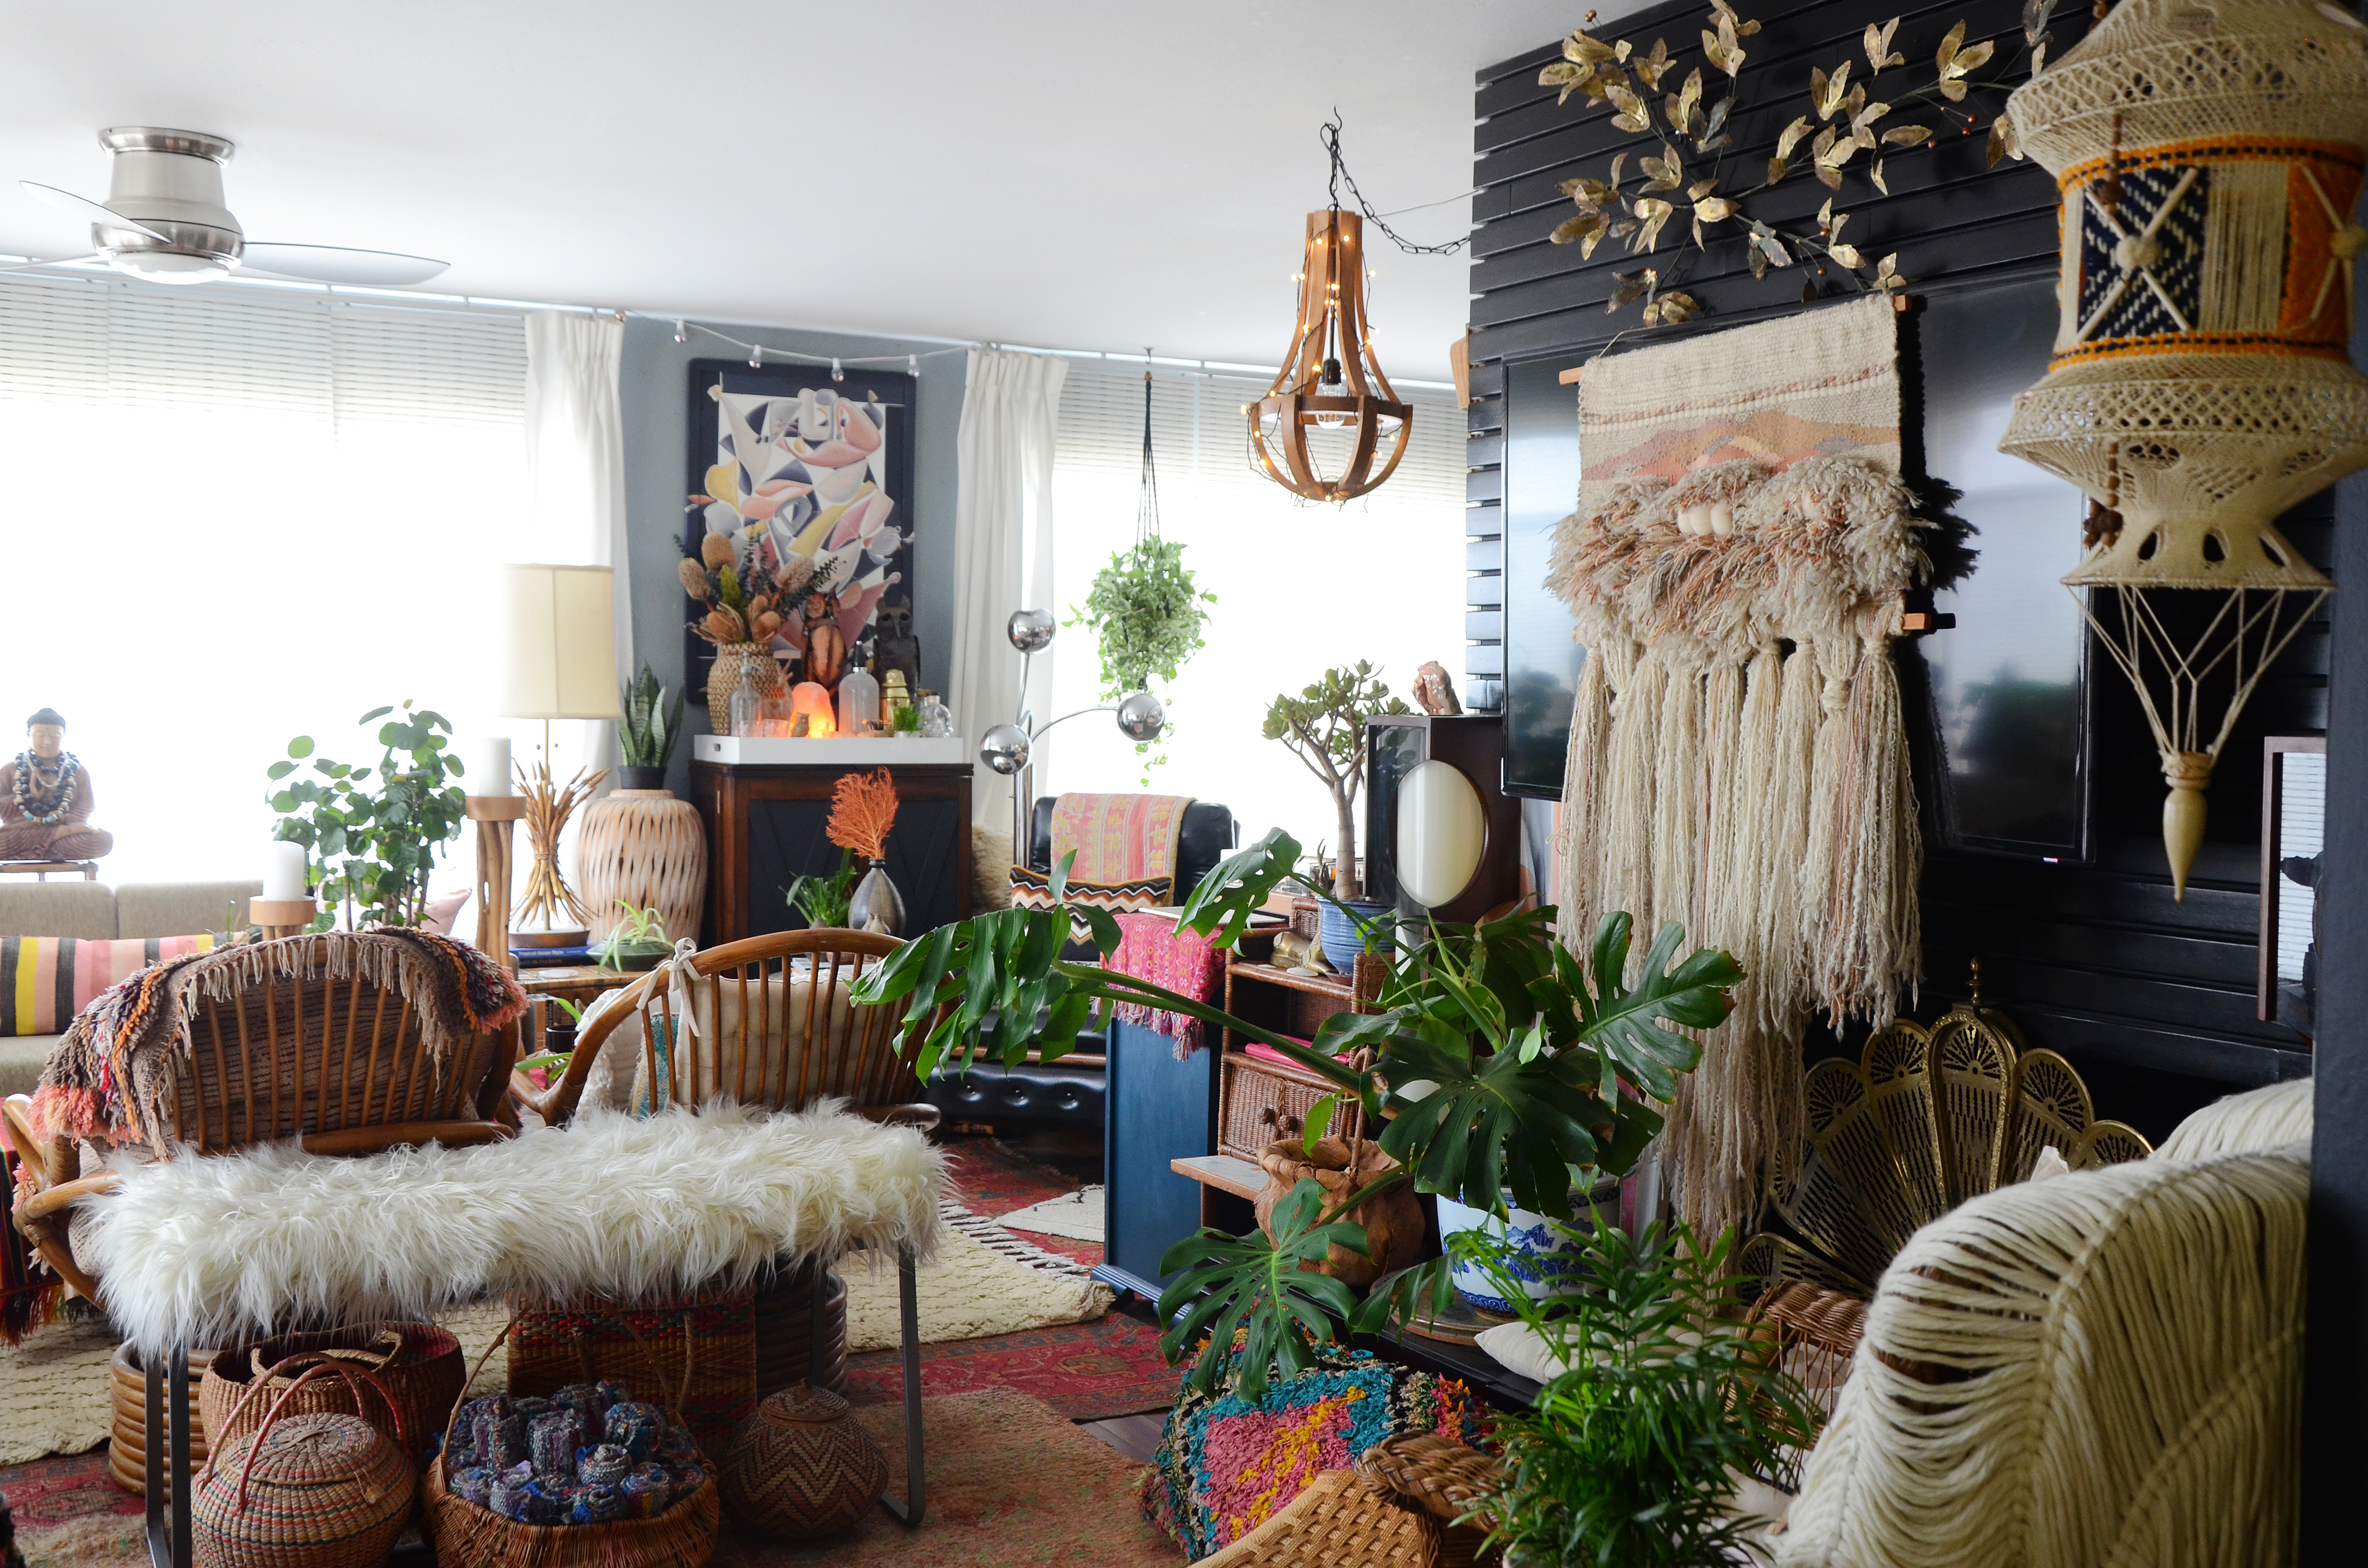 Apartment Therapy & Best Boho Interior Design Books | Apartment Therapy